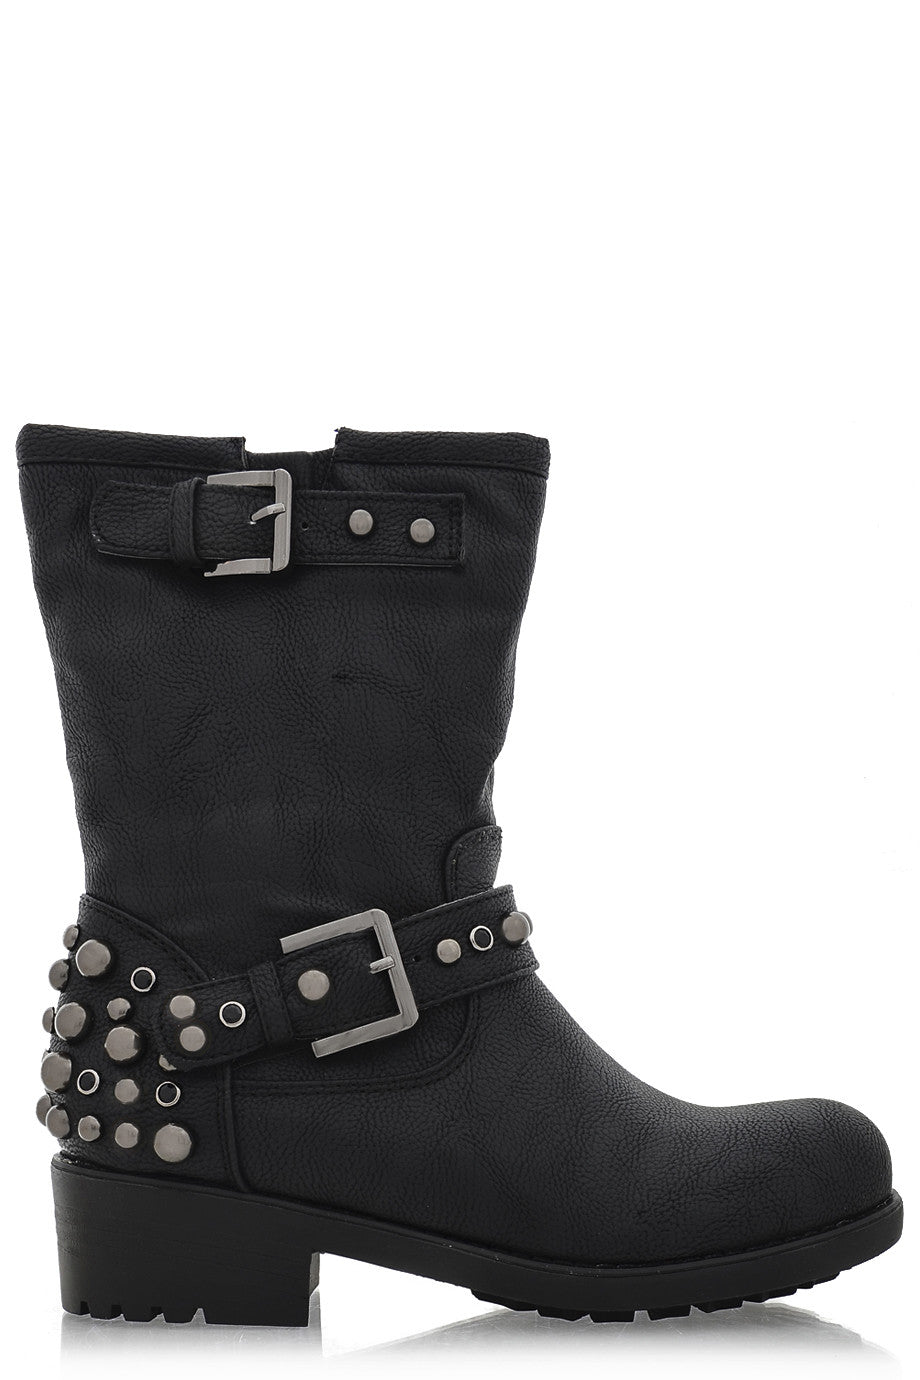 running shoes separation shoes great quality TIMELESS IVONA Black Studded Women Ankle Boots – Pret-A-Beaute